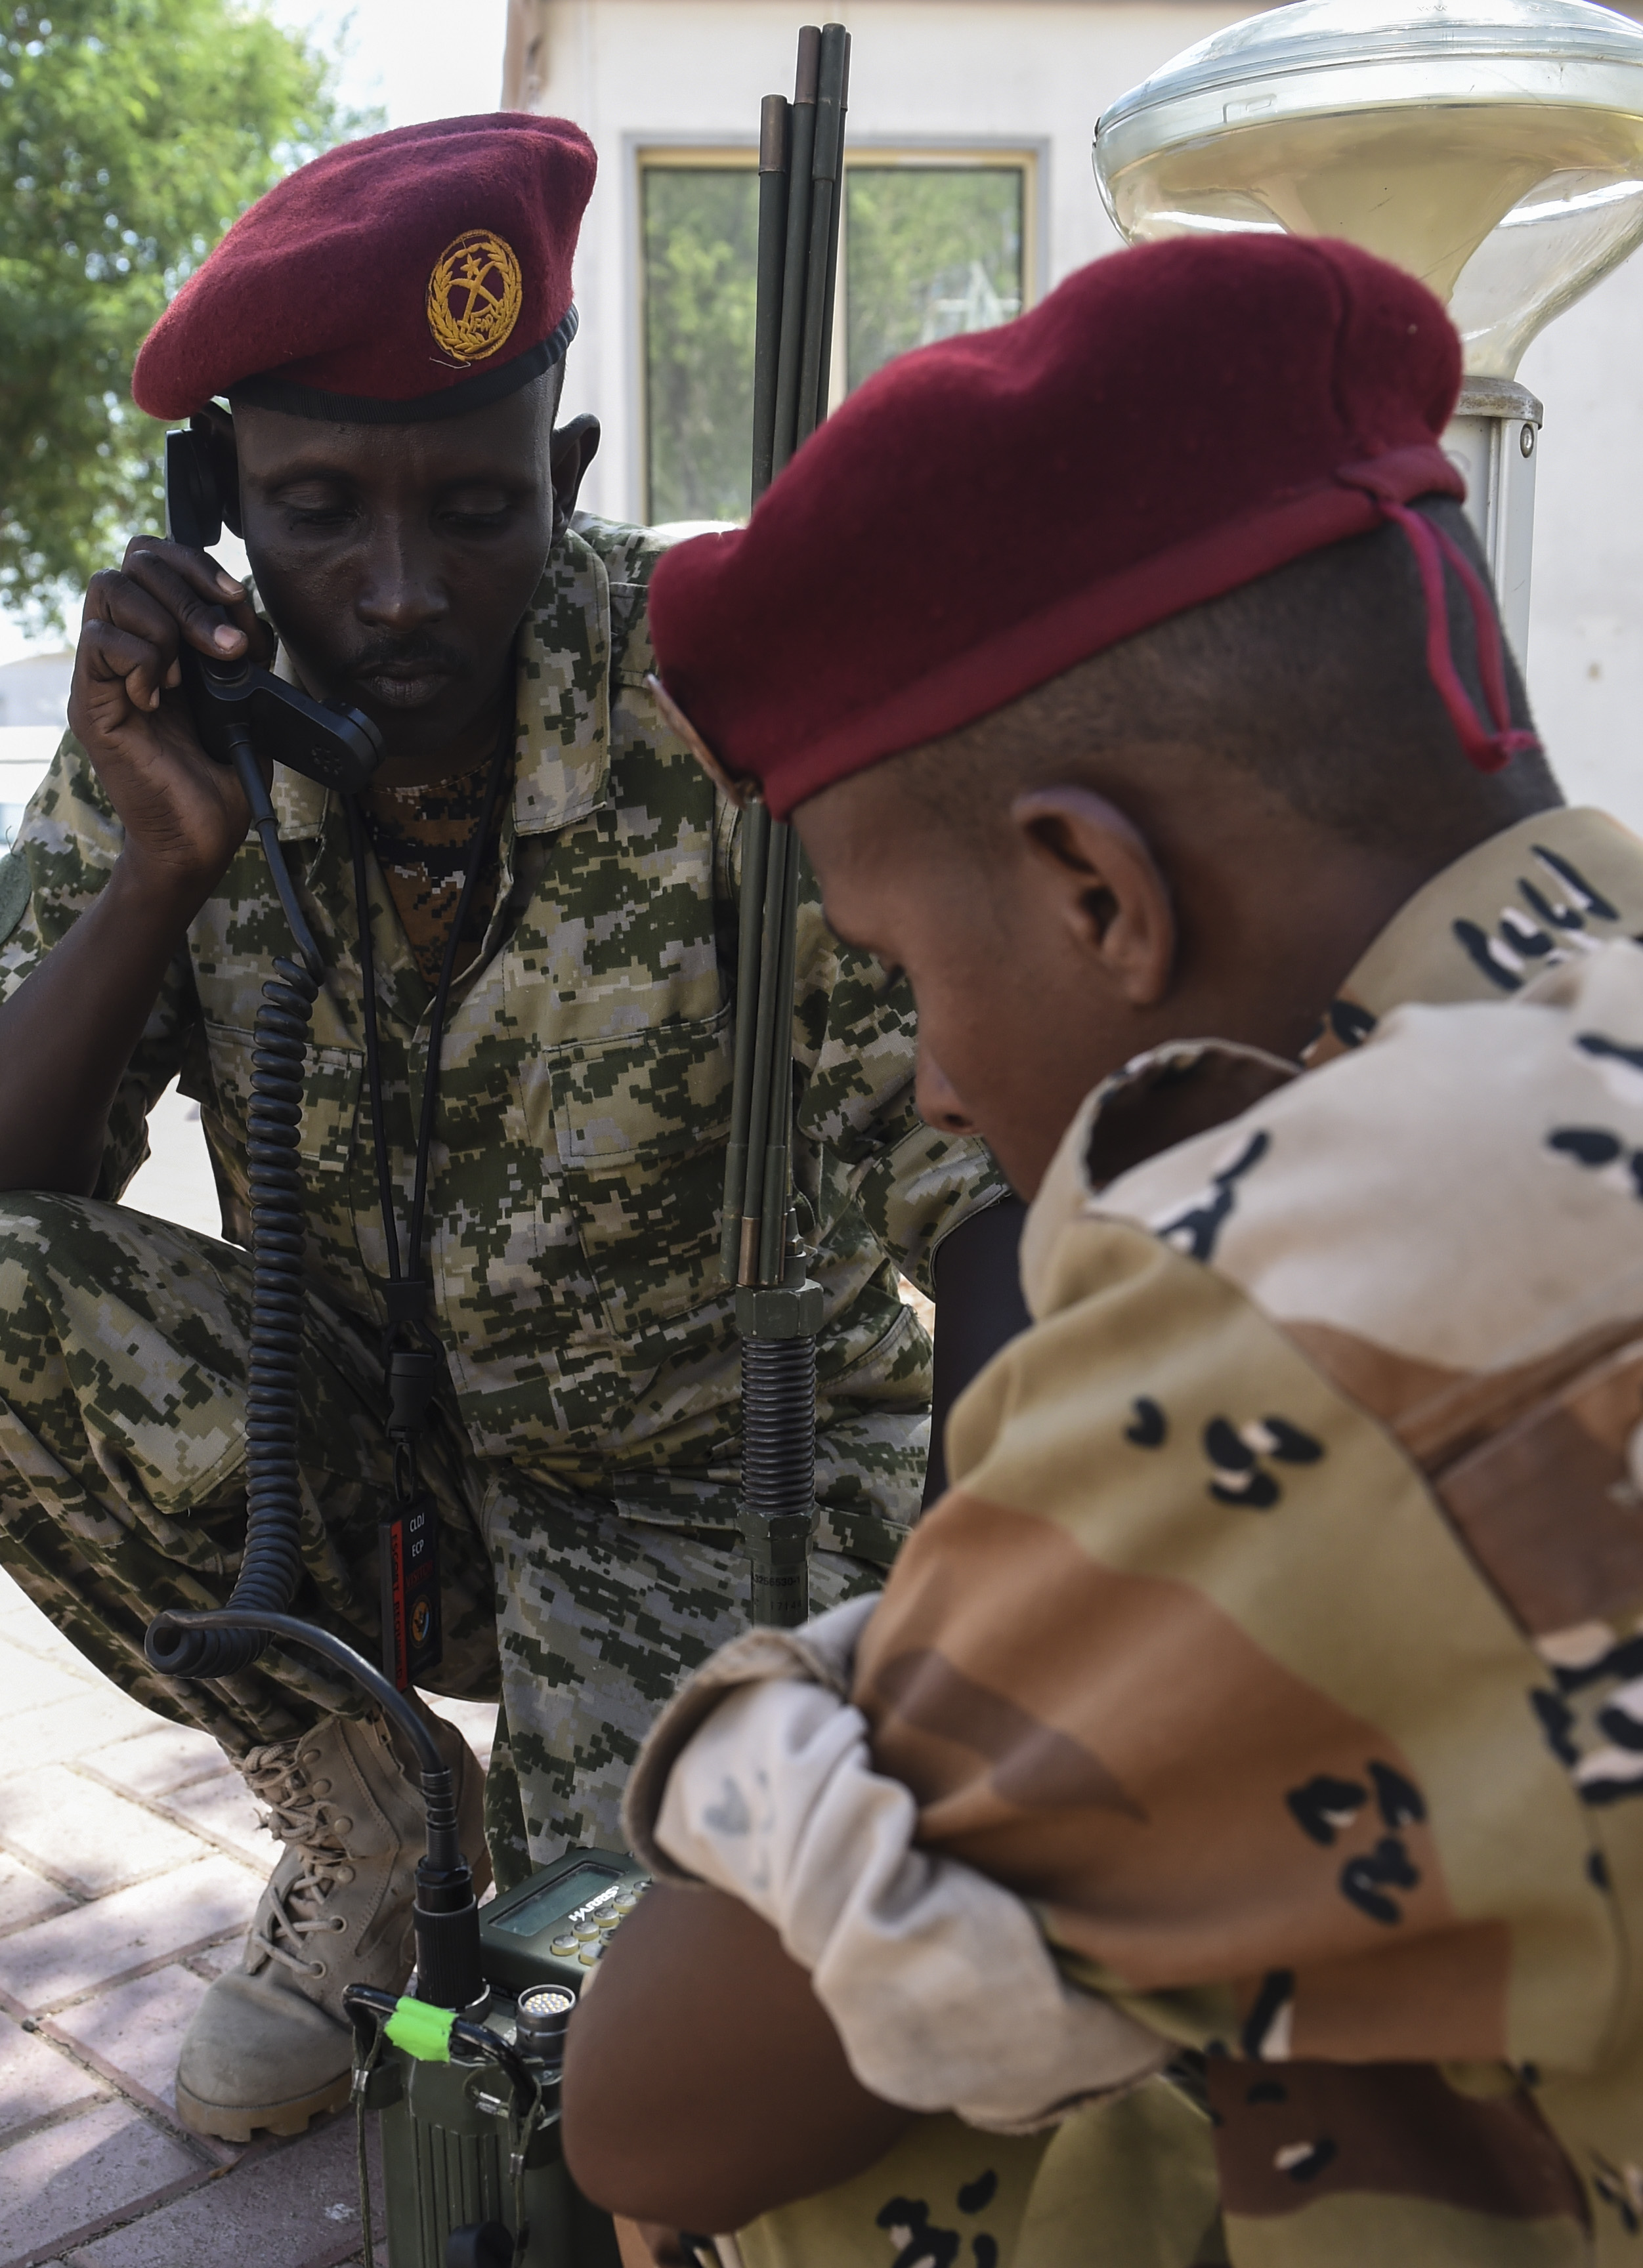 Two Djibouti Armed Forces members use Harris radios during a three-day best practices sharing session with radio operators from the Combined Joint Task Force-Horn of Africa communications directorate at Camp Lemonnier, Oct. 3, 2017. Best-practice sharing events like these help East African partners to strengthen their defense capabilities, capacity, and coordination to enable them to provide for their own security, combat transnational threats, and respond to crises. (U.S. Air Force photo by Staff Sgt. Eboni Prince)